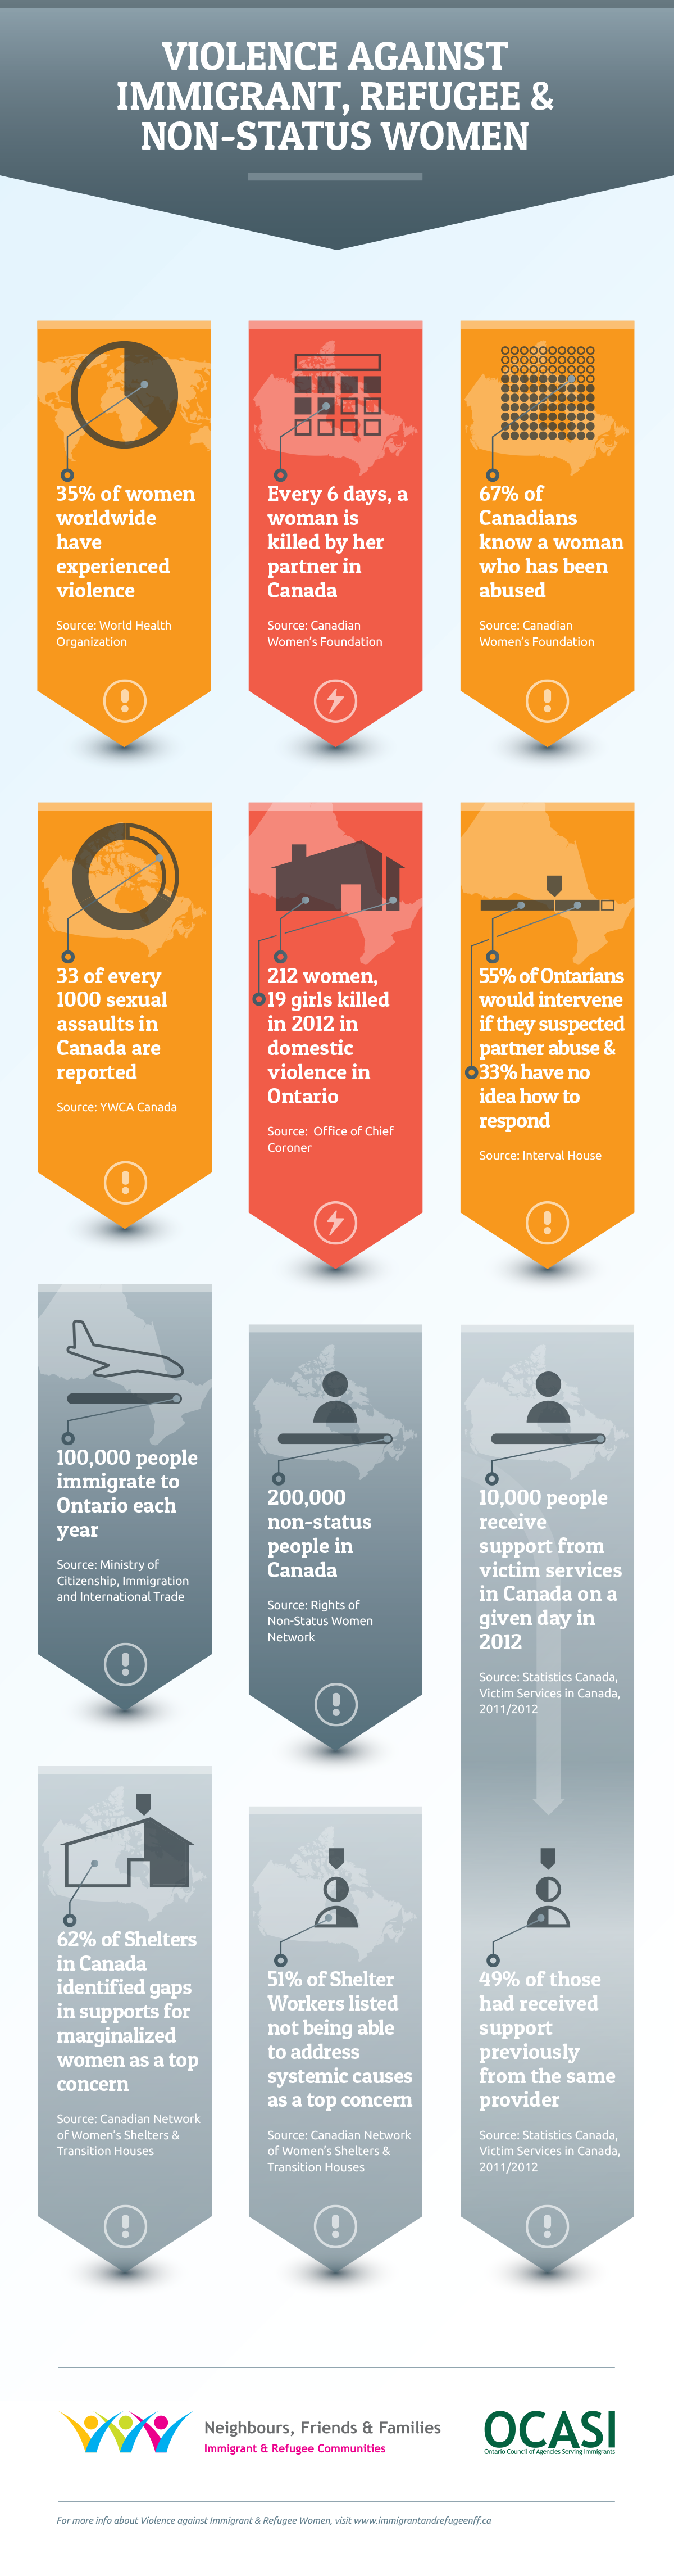 Infographic - Violence against immigrant, refugee & non-status women